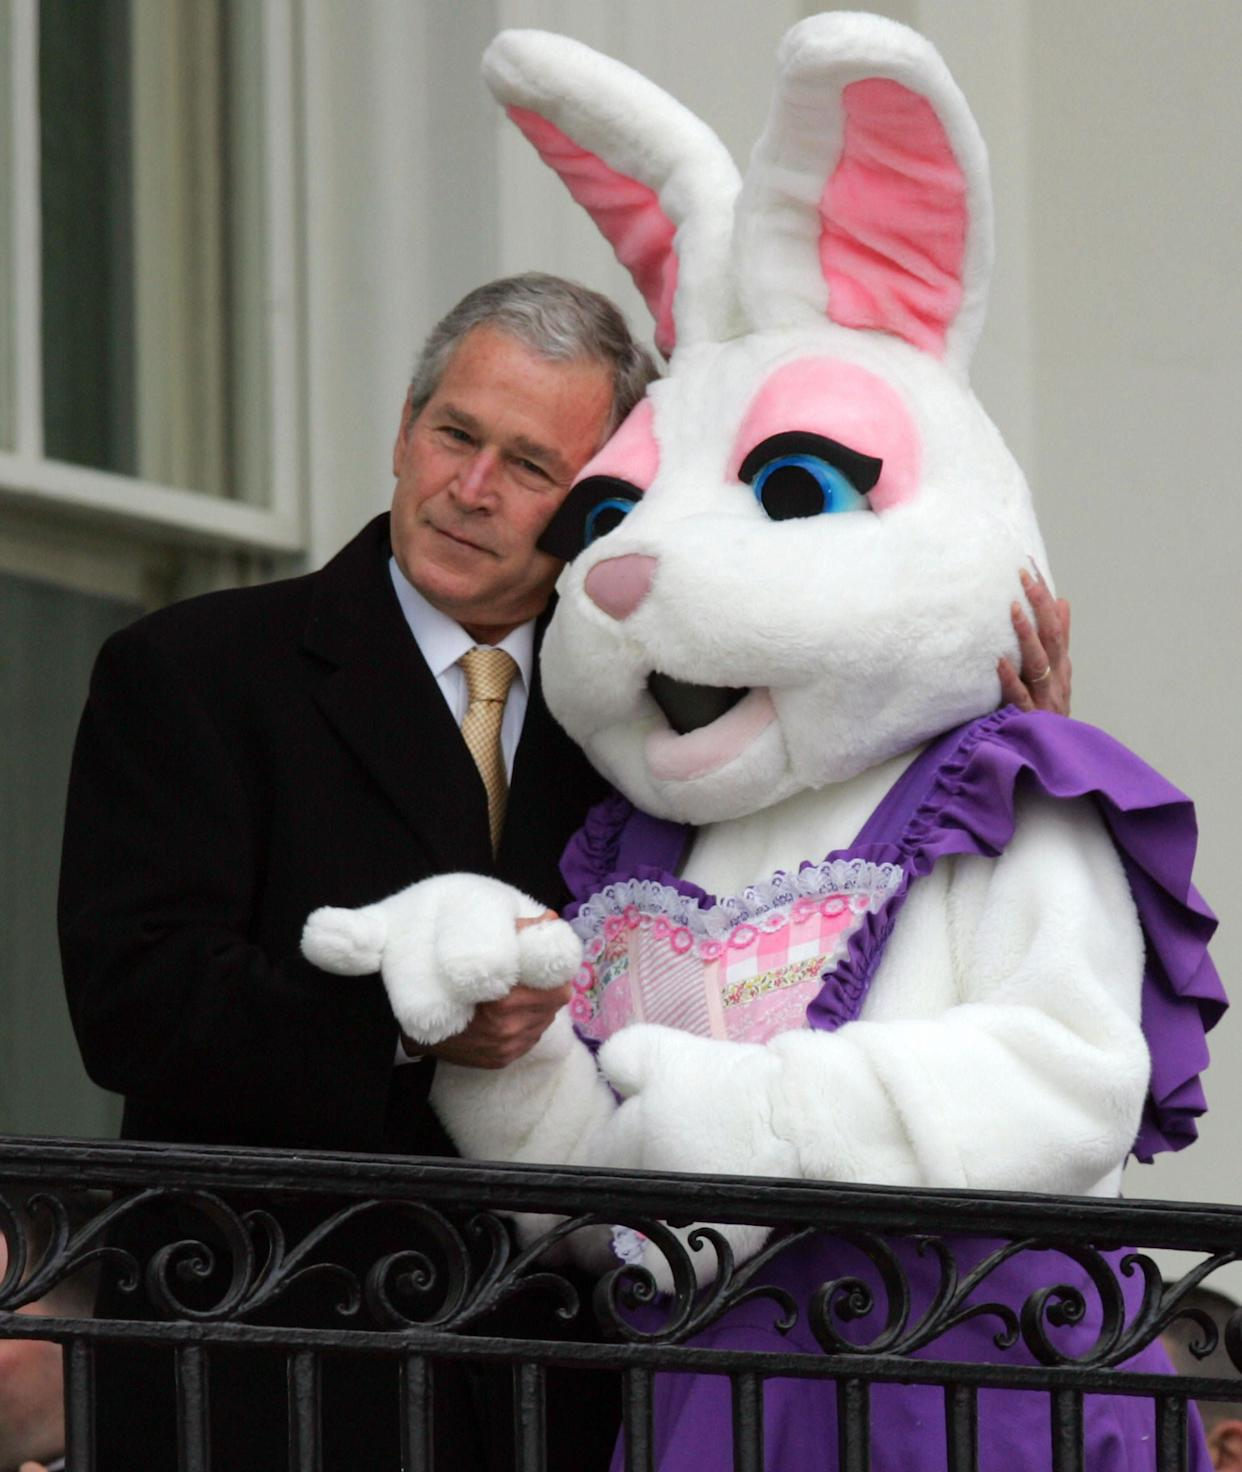 President George W. Bush hugsthe Easter Bunnyduring the annual Easter Egg Roll on the South Lawn of the White House on March 24, 2008.